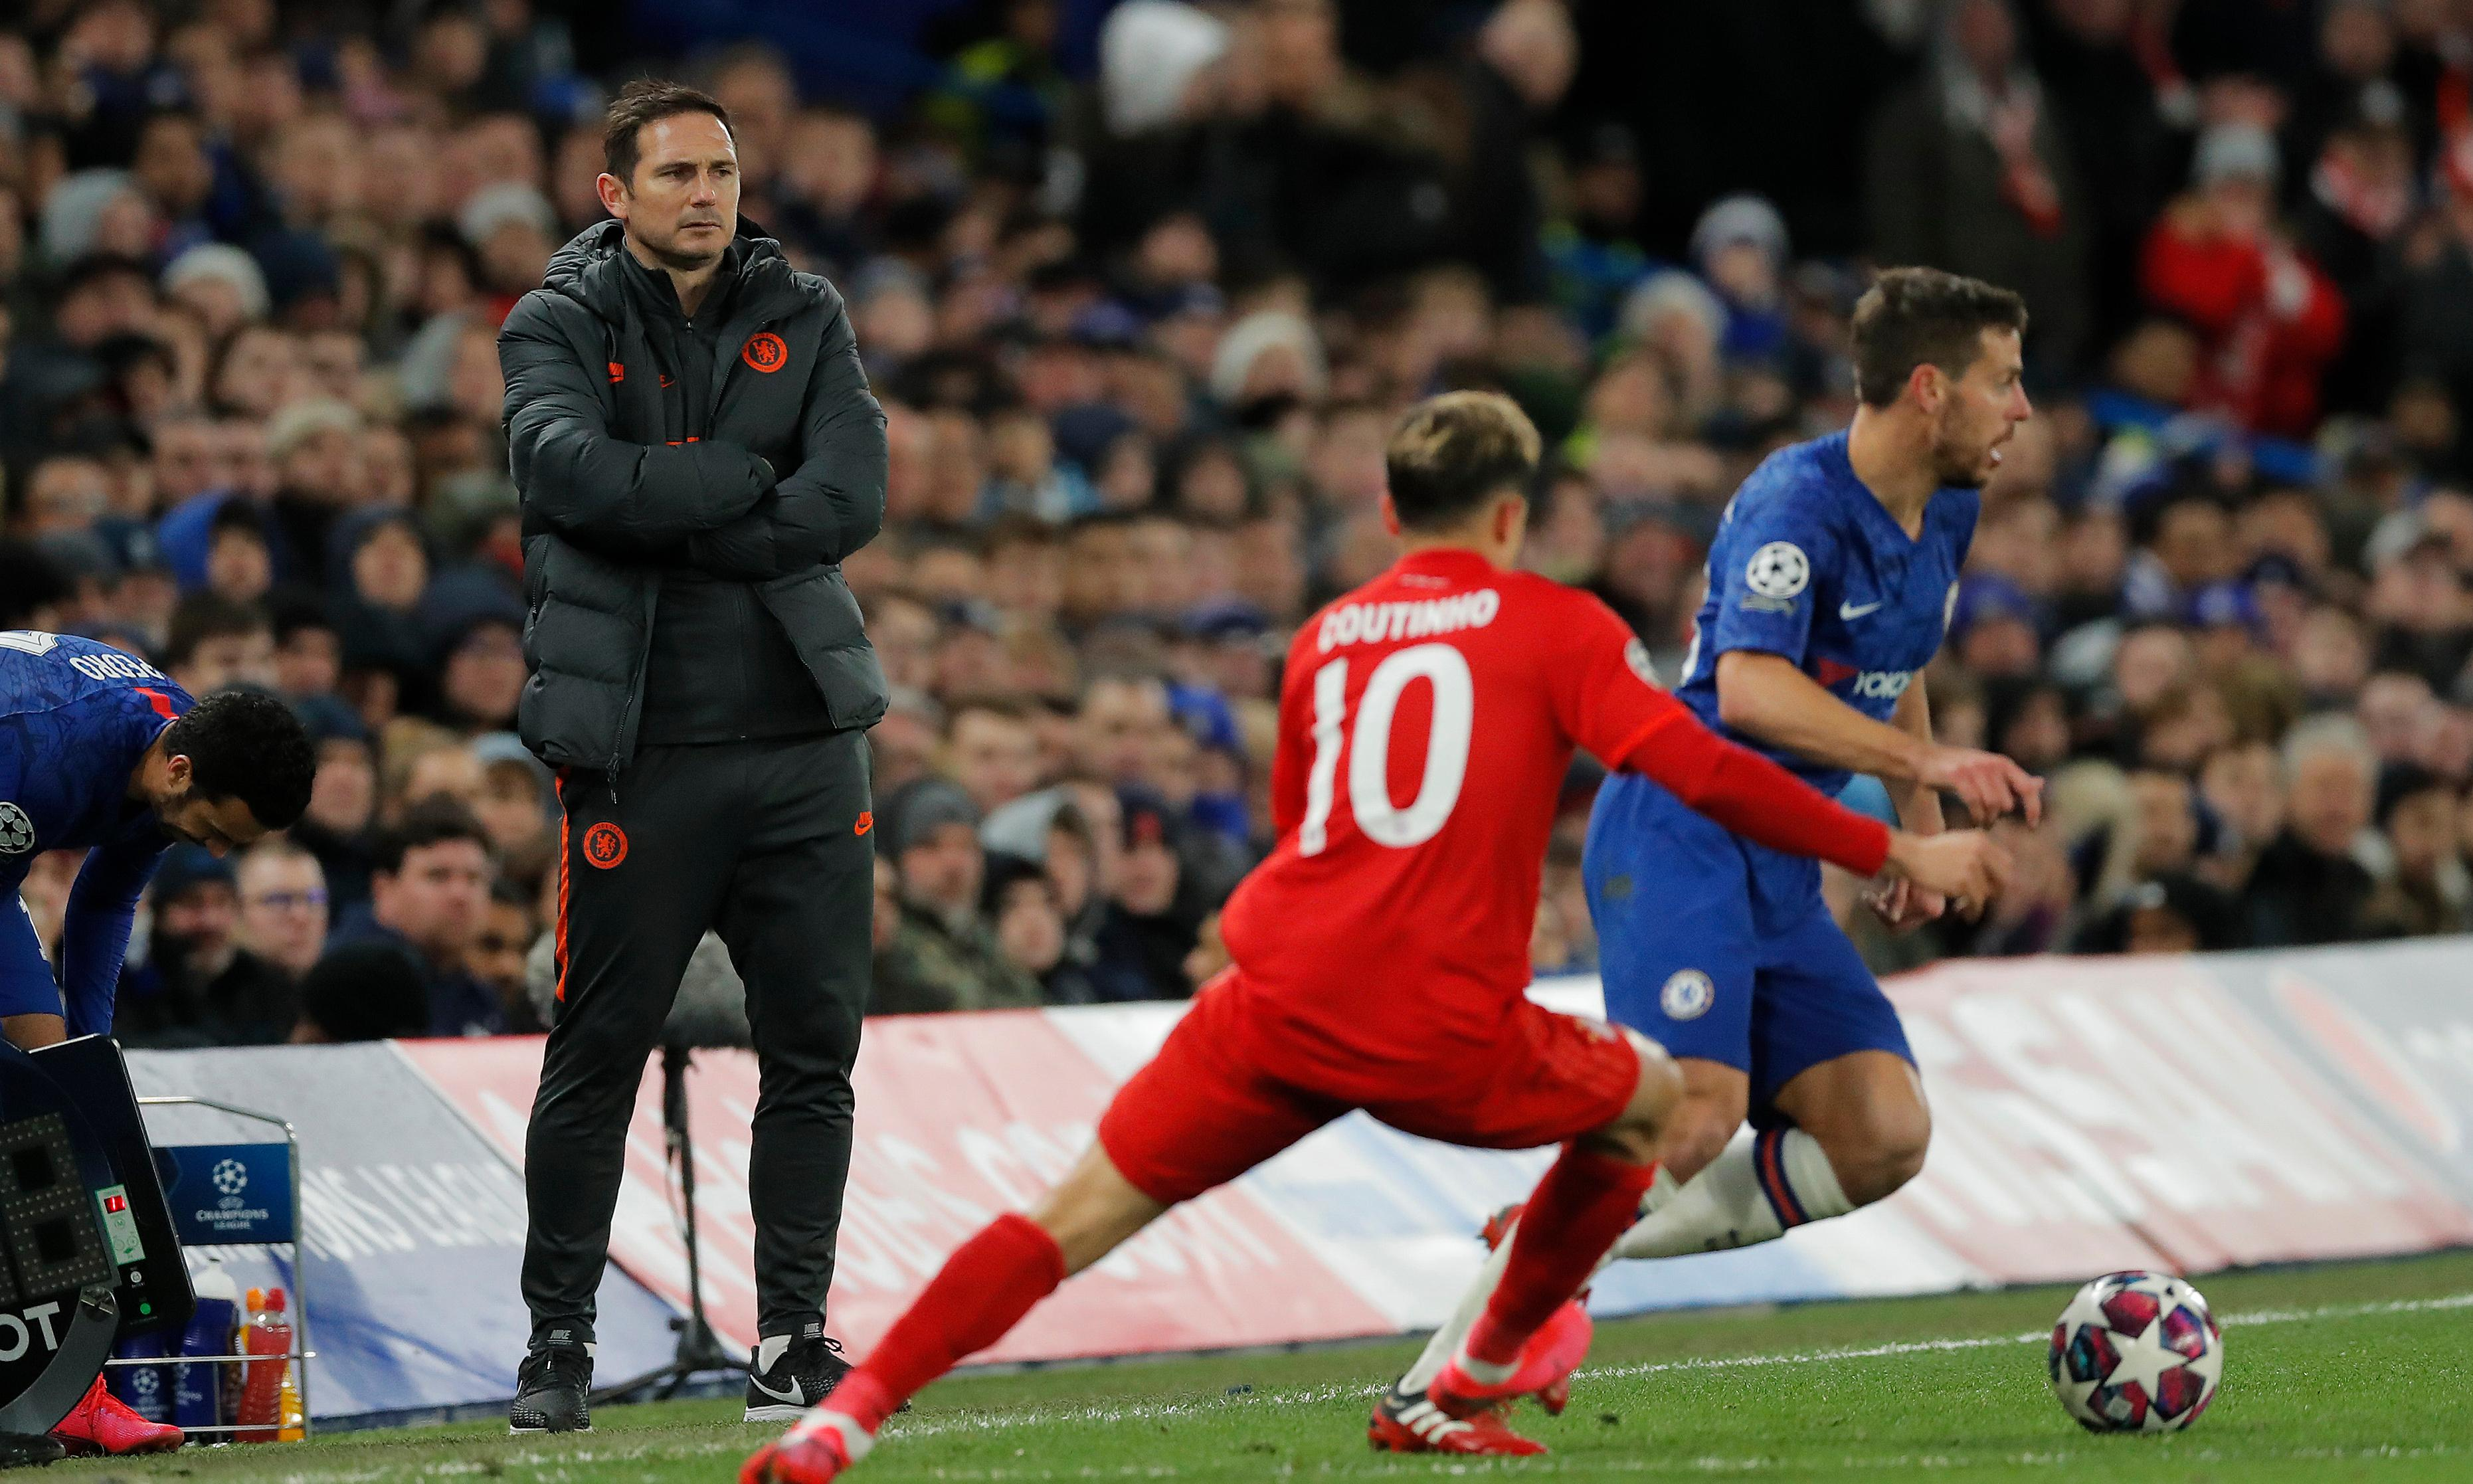 Bayern defeat was a 'harsh lesson', admits Chelsea's Frank Lampard